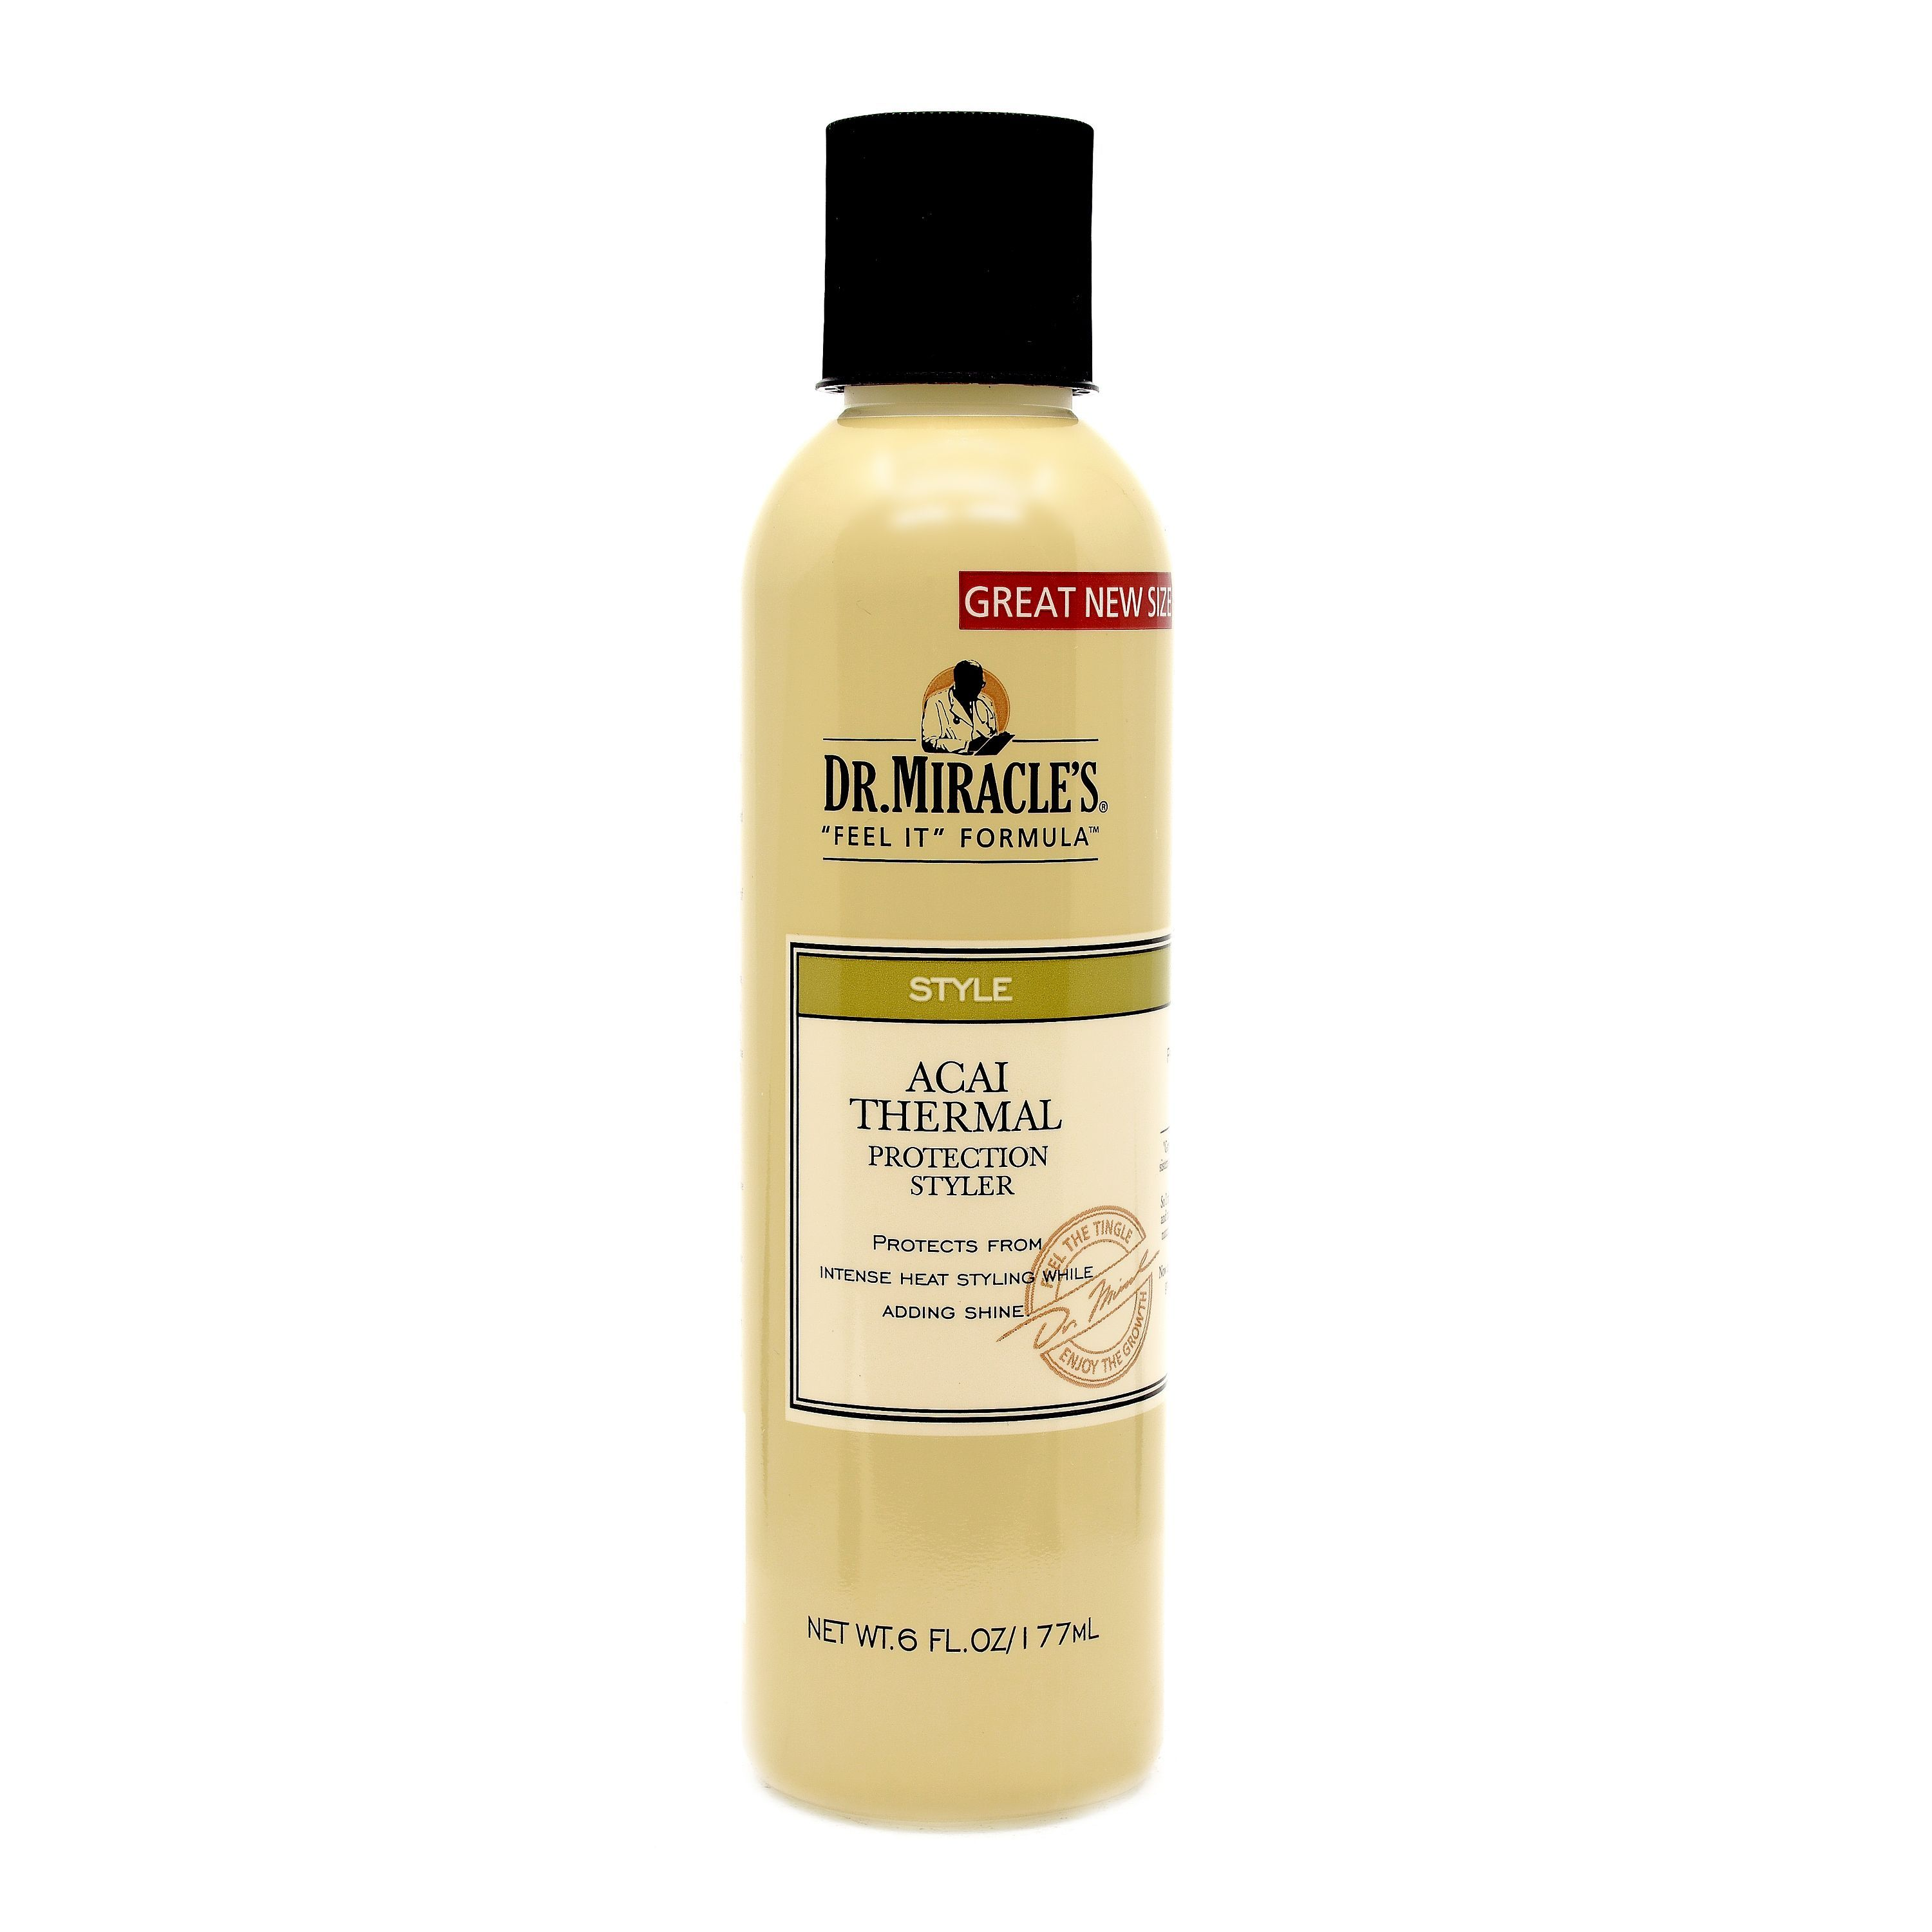 Dr. Miracle's Acai Thermal Protection Styler - 6oz